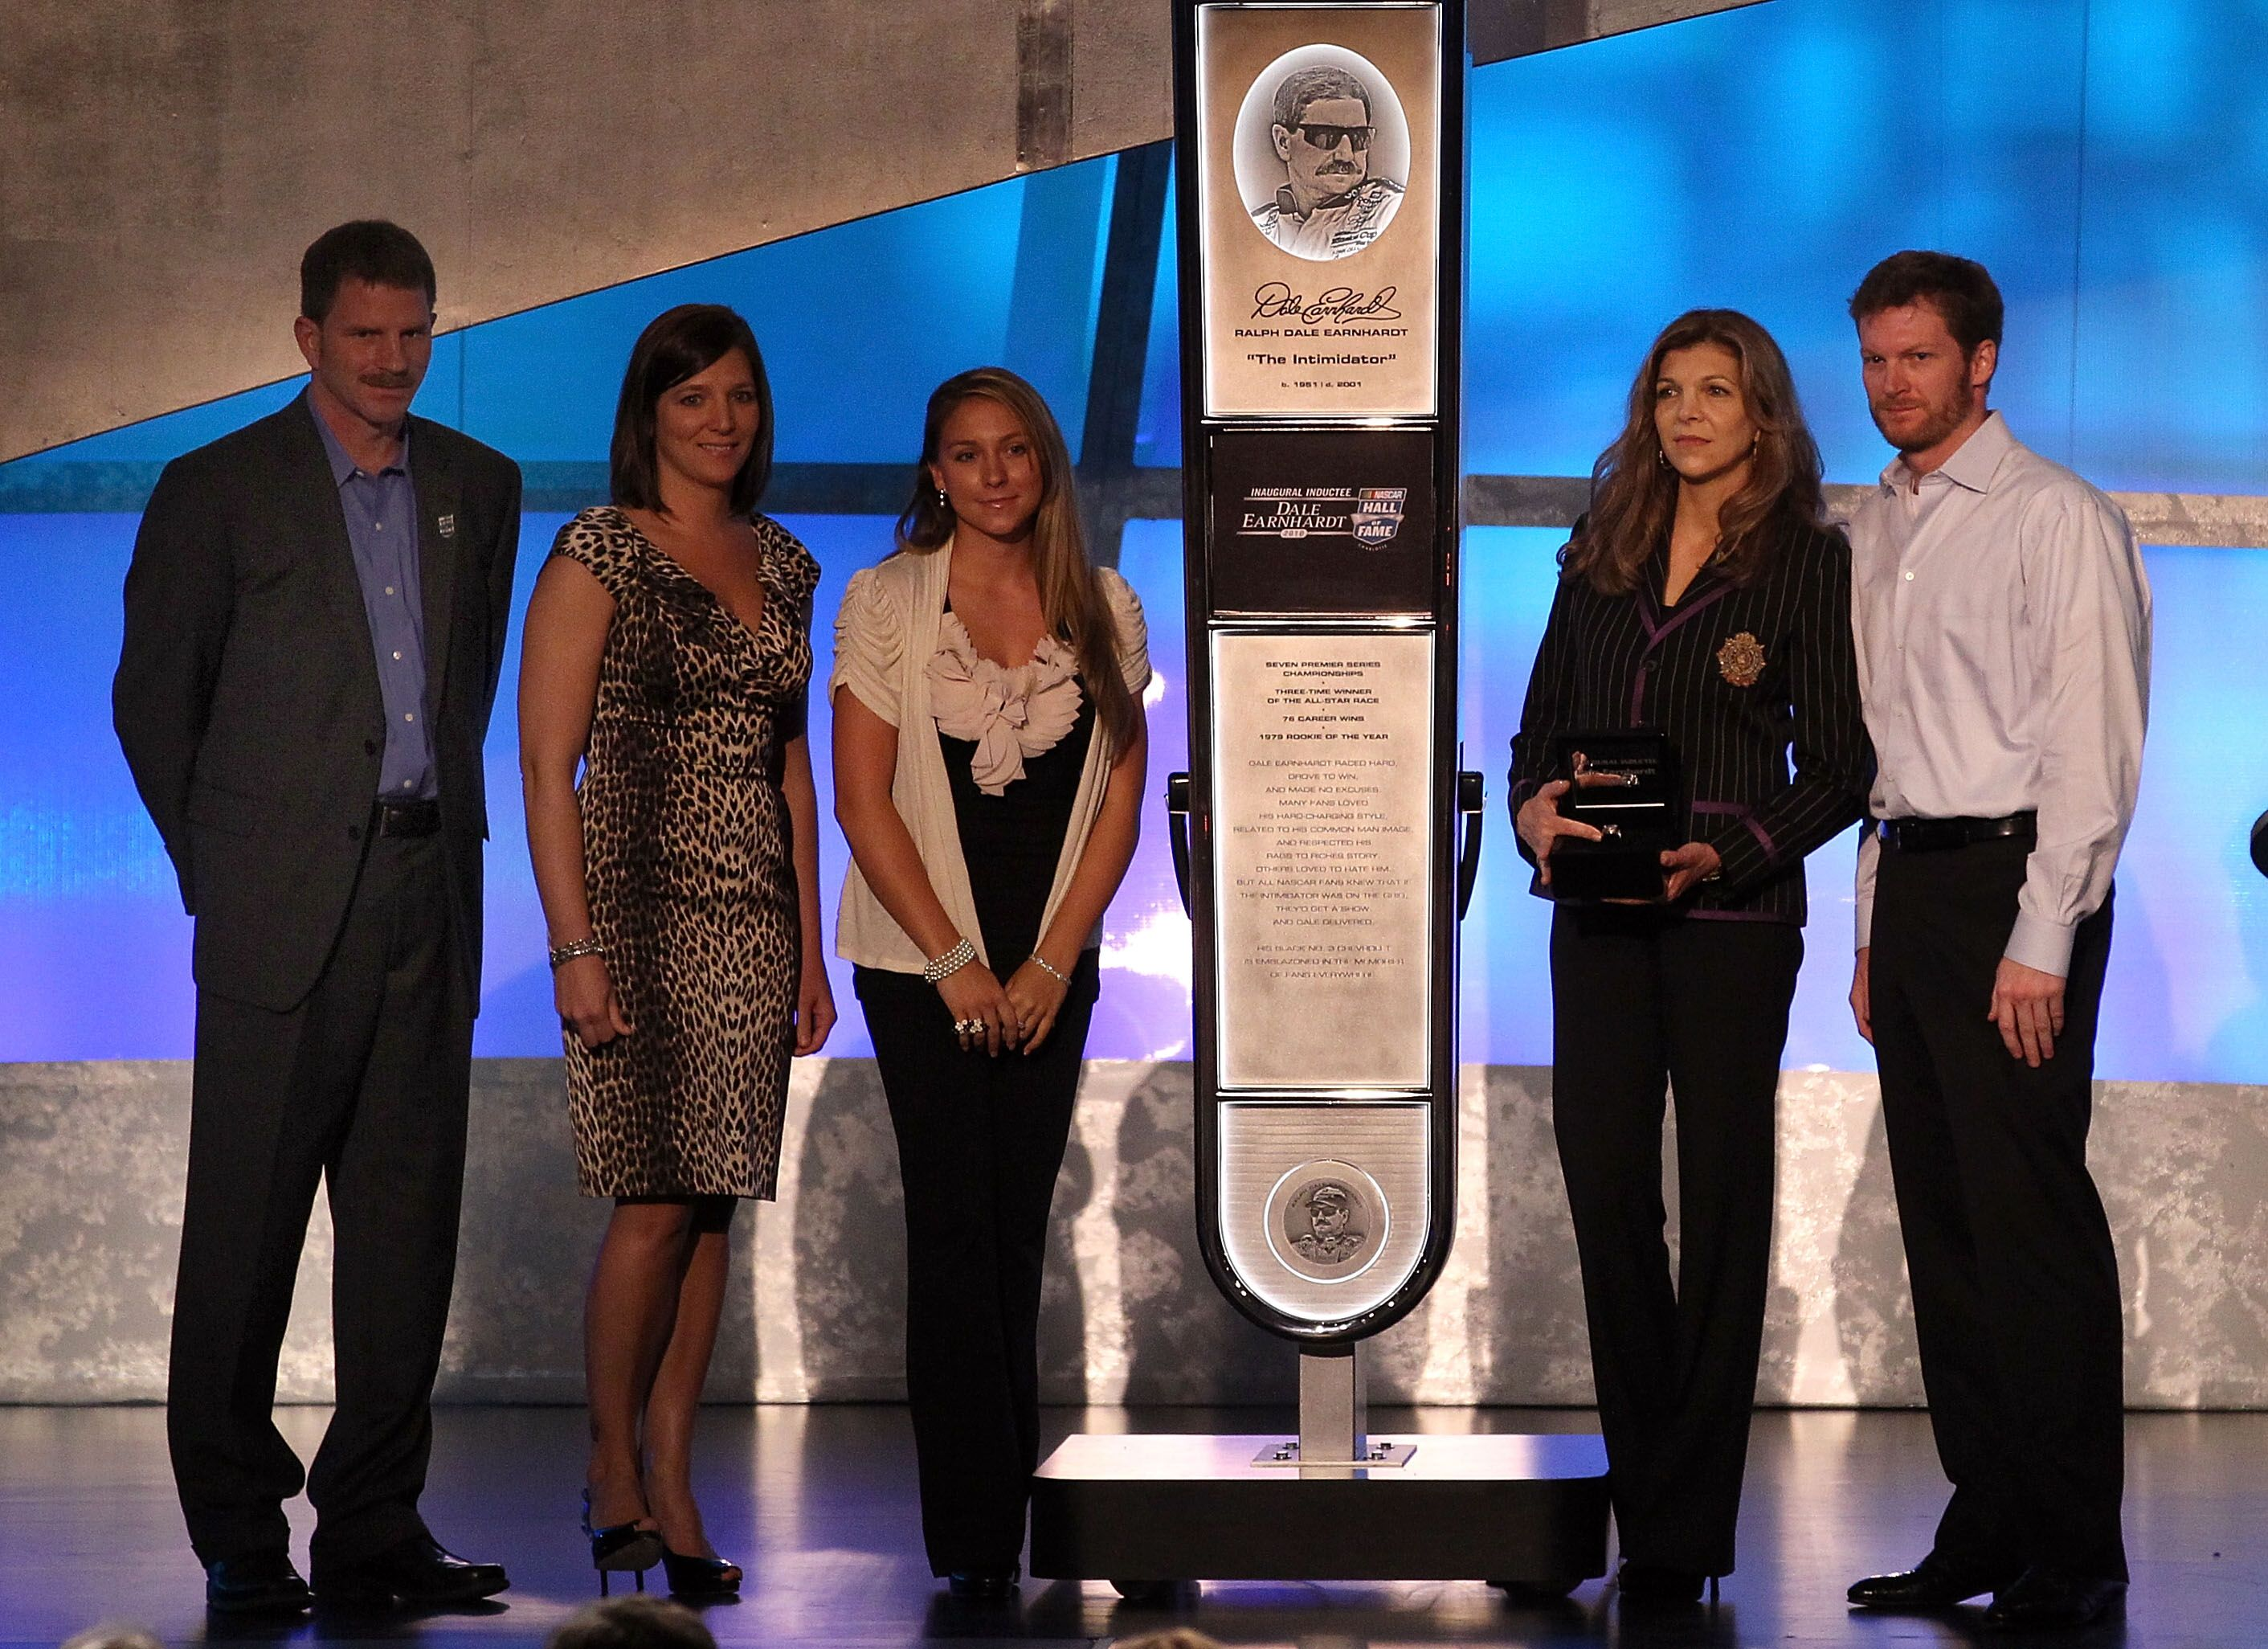 Dale Earnhardt Jr., Teresa Earnhardt, Kerry Earnhardt, Kelley Earnhardt Elledge and Taylor Earnhardt at the ceremony inducting Dale Earnhardt Sr. into the 2010 NASCAR Hall of Fame in Charlotte, North Carolina | Source: Getty Images